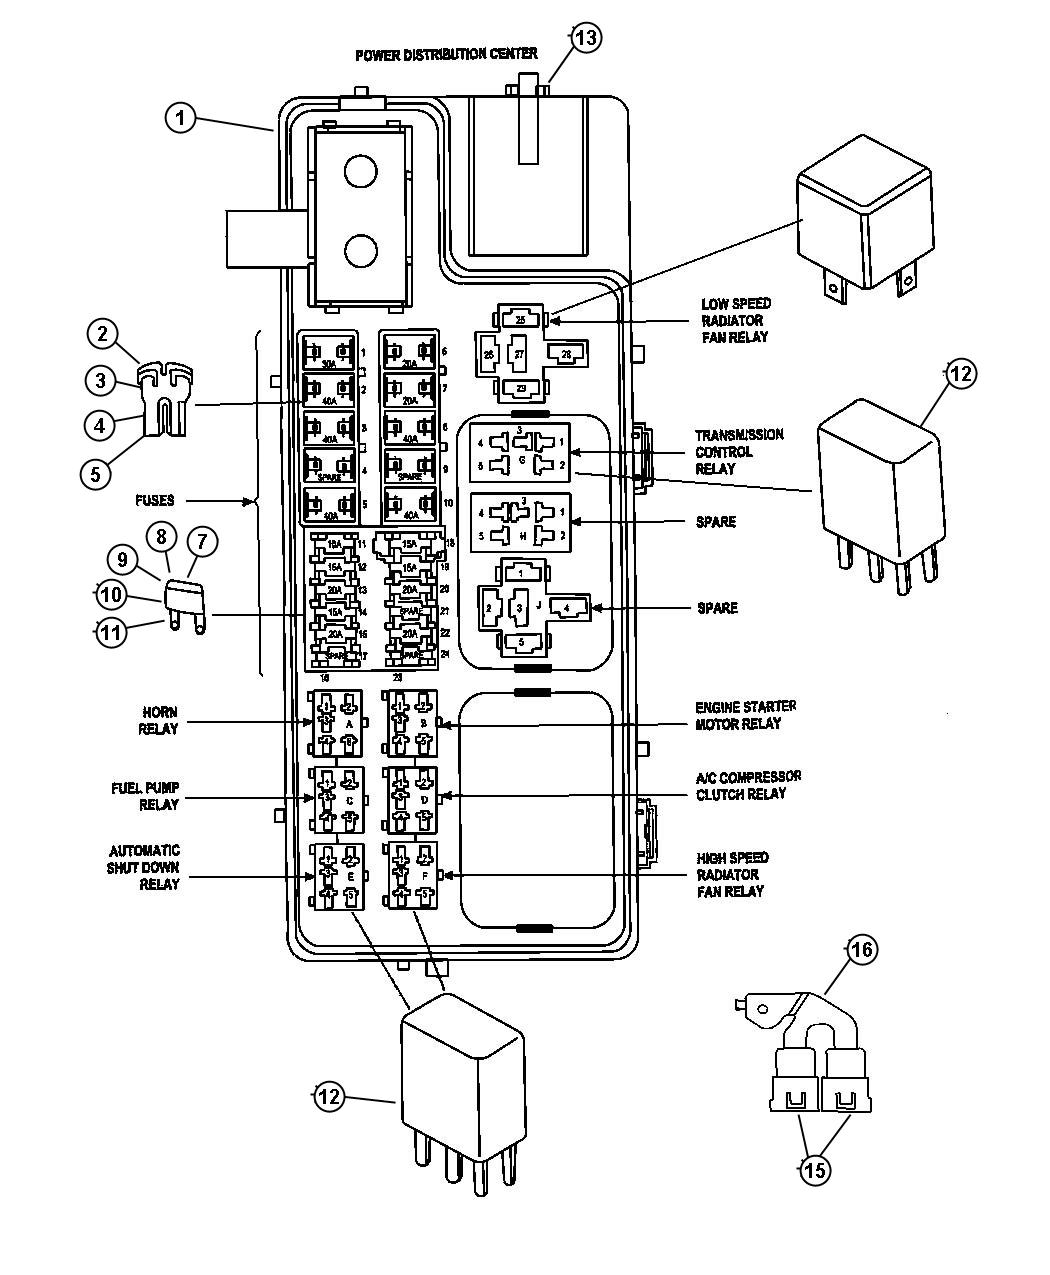 Wiring Diagram For 2002 Chevy Tracker furthermore Fuse And Relay Scat further Chevy S10 Starter Diagram as well 2001 Kia Rio Fuse Box Diagram further Electric Distribution Box Wiring Diagram. on change fuse in box circuit breaker